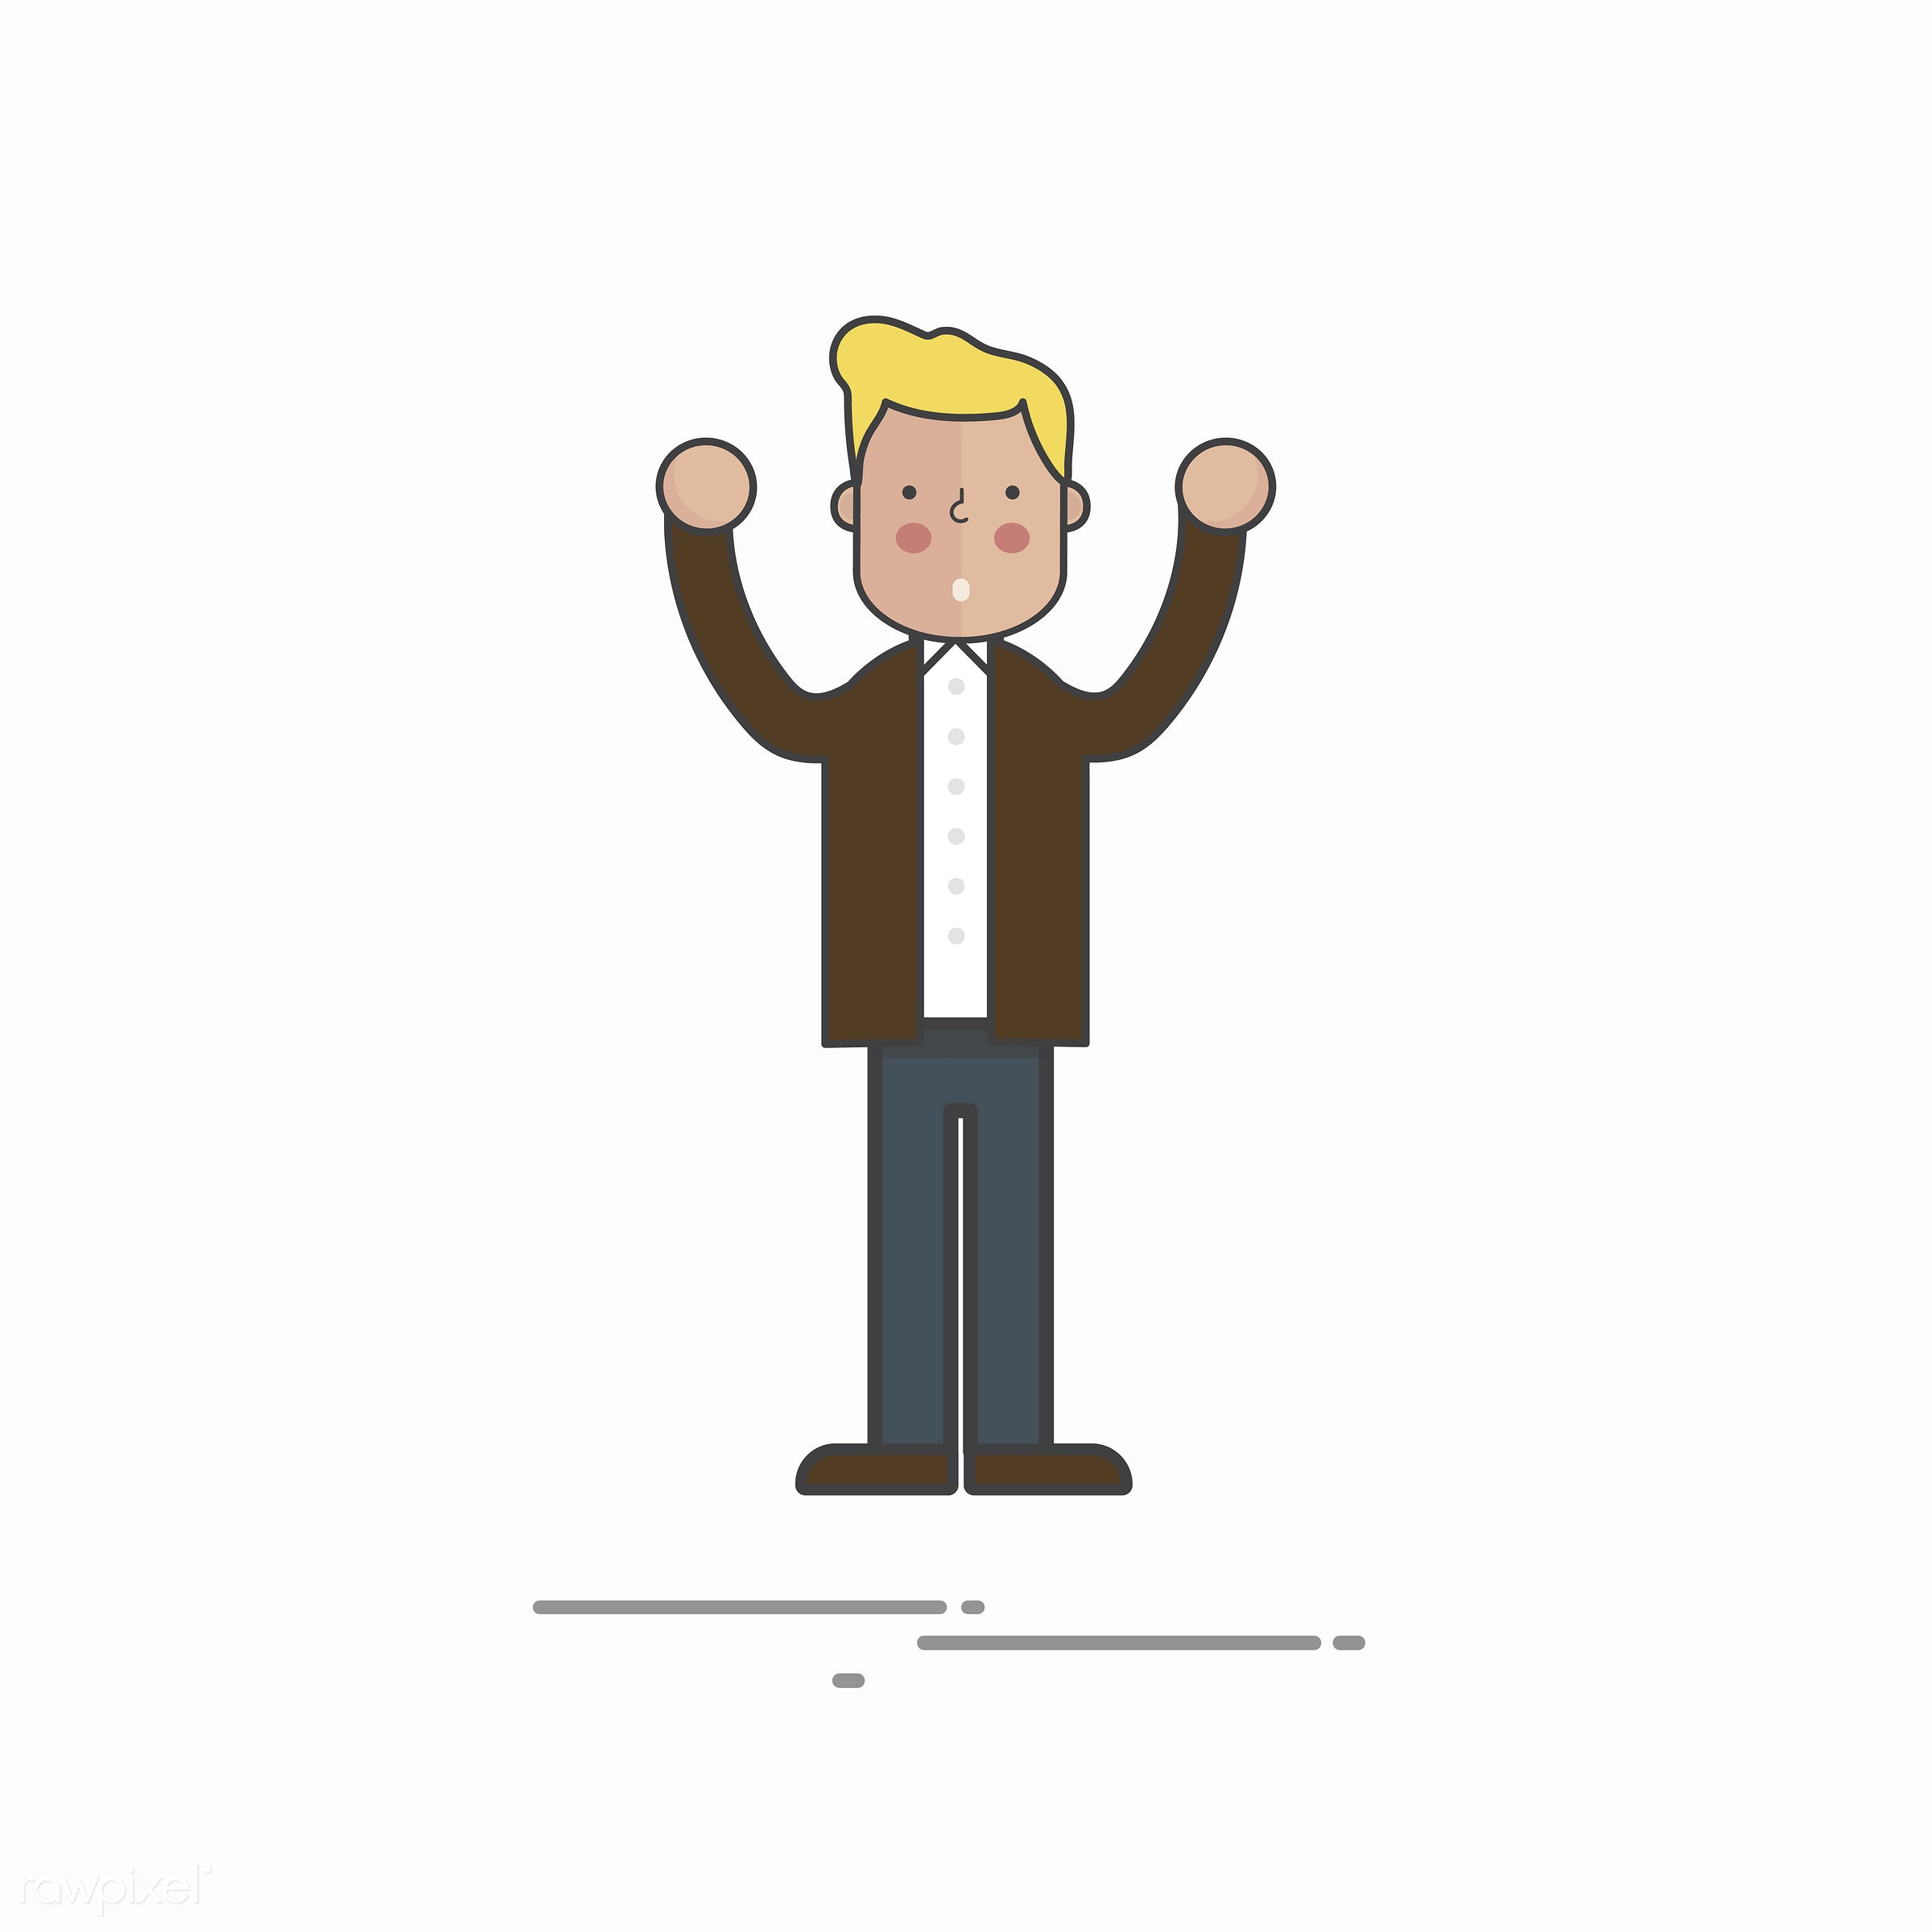 Illustration of people avatar - alone, arms raised, cartoon, character, design, drawing, graphic, guy, illustration, male,...